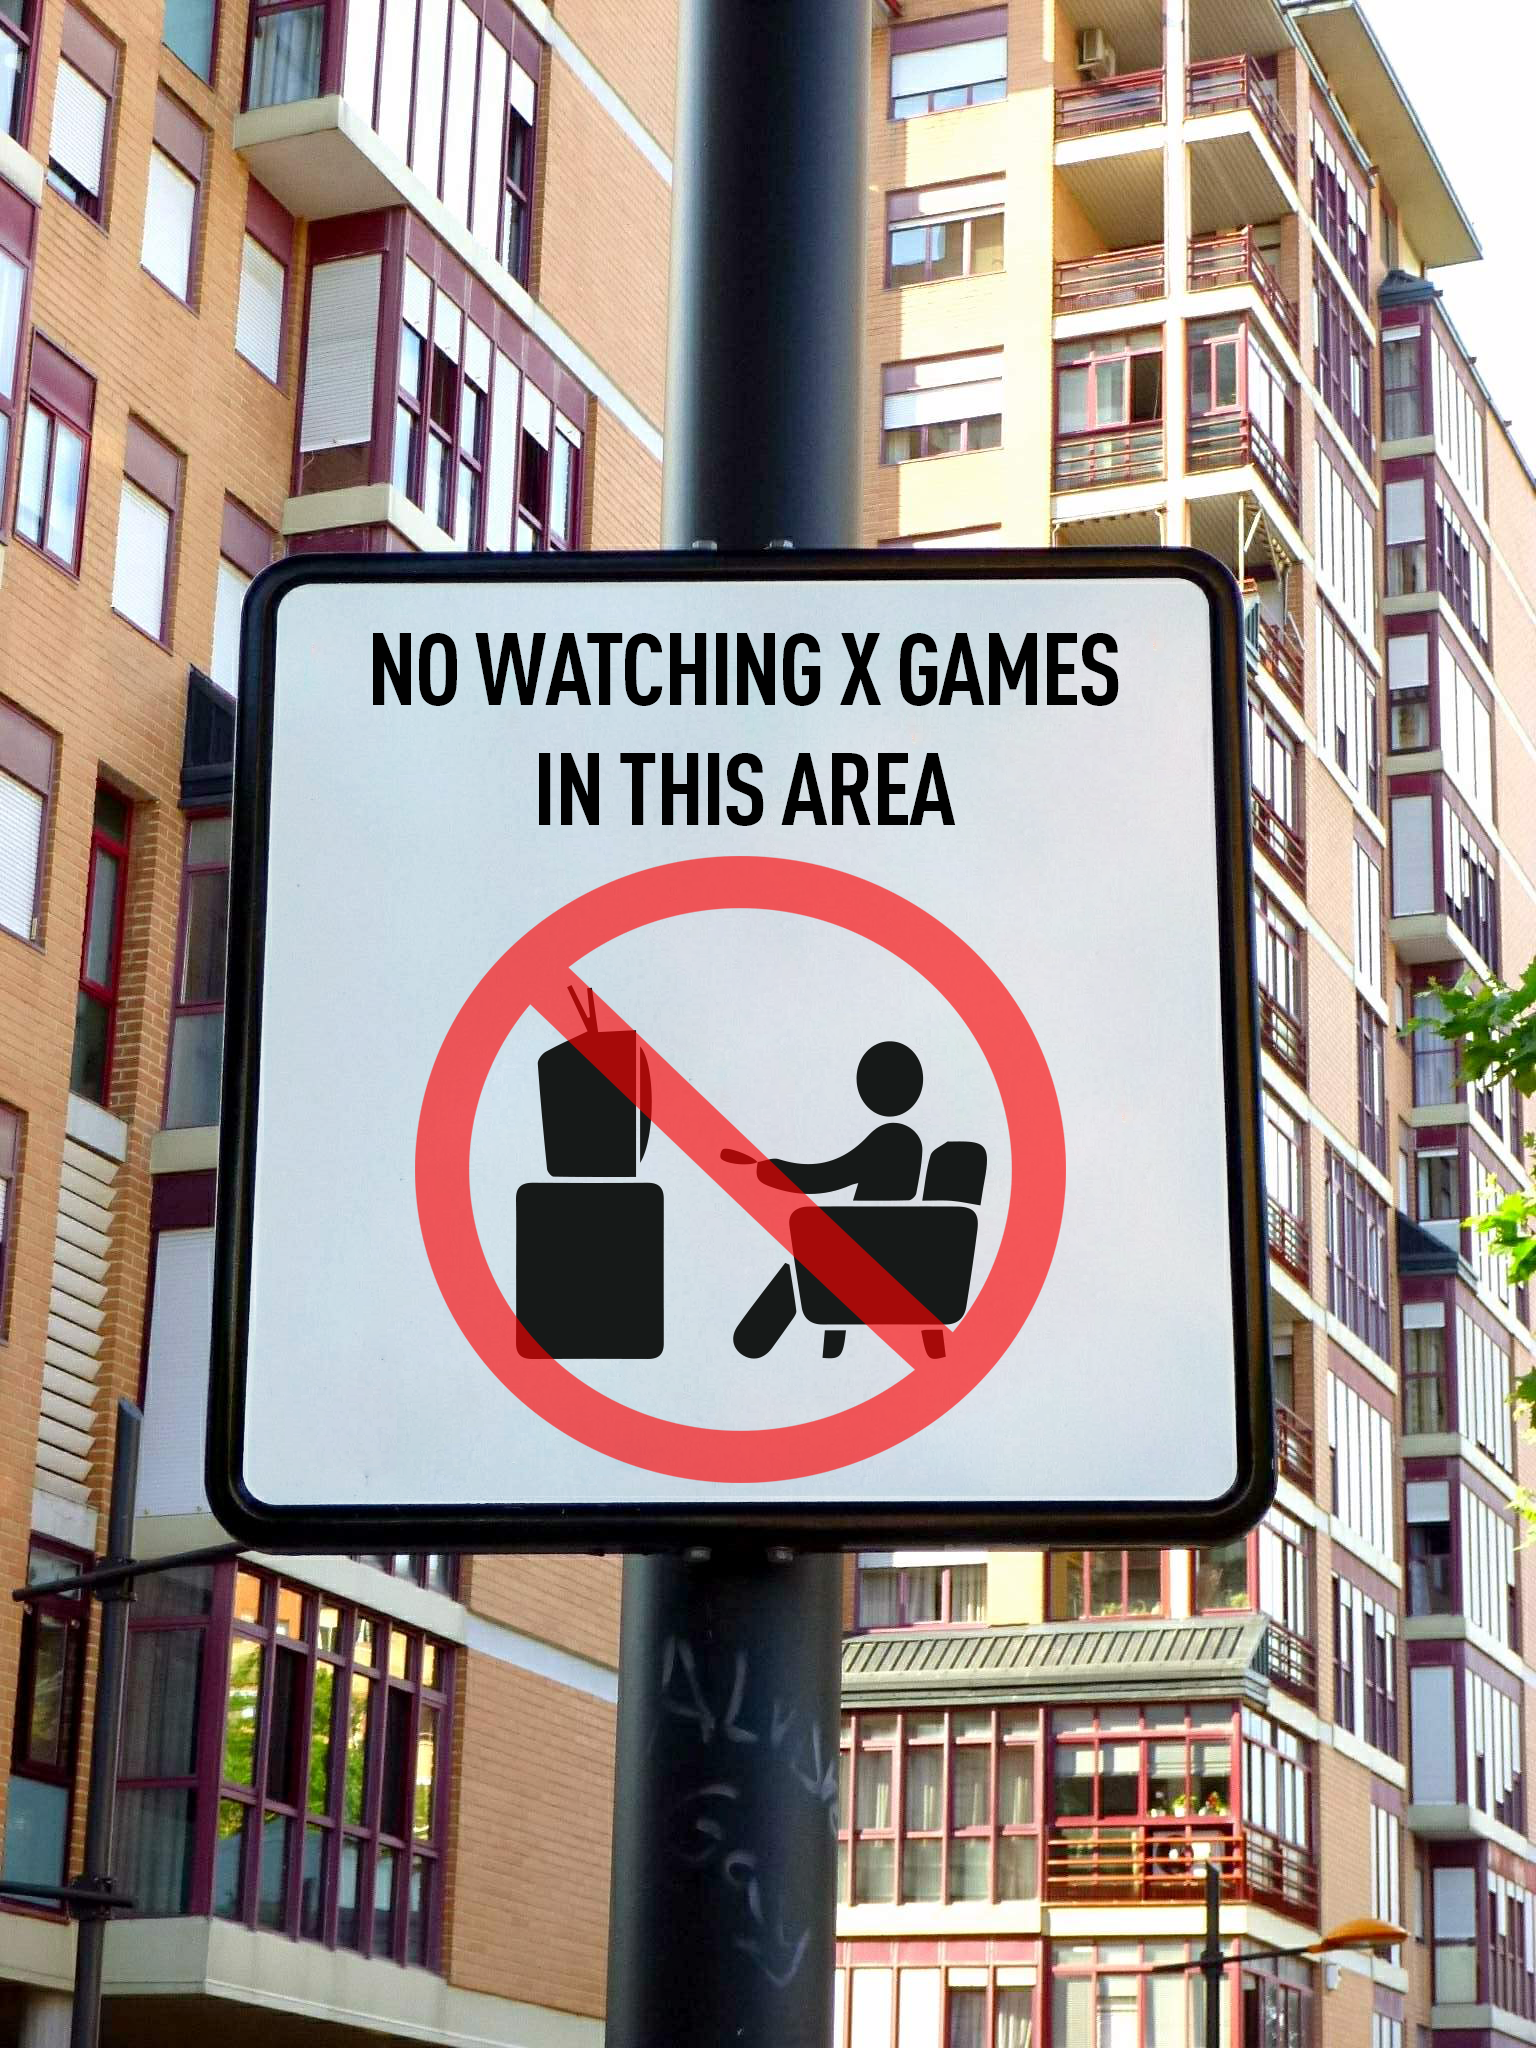 no x games sign1.png